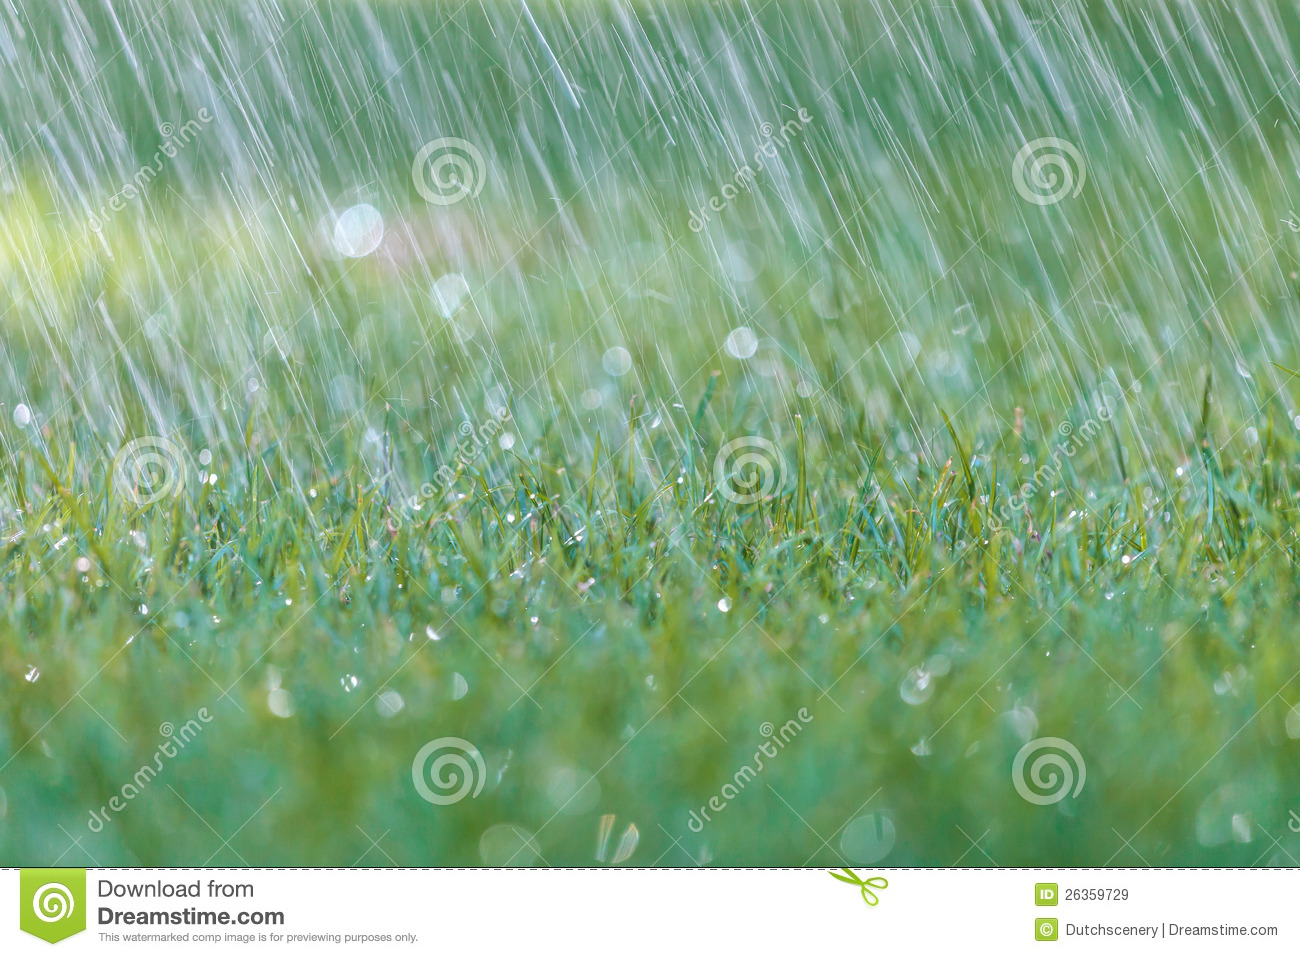 Wallpaper Falling Down Rain Is Falling On Fresh Green Grass Royalty Free Stock